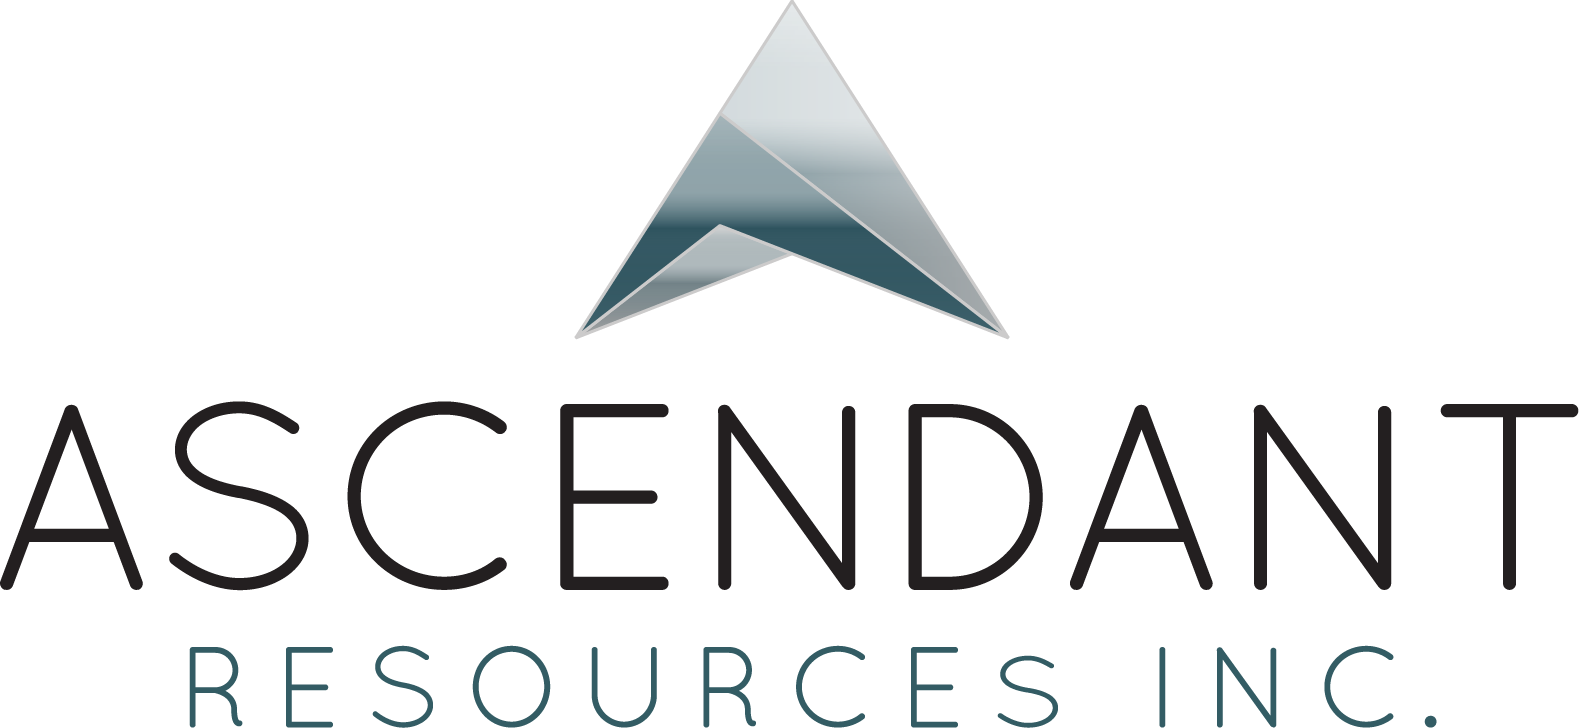 Ascendant Resources Initiates 2020 Exploration Program Focusing on the Copper-Rich South Zone and Announces Non-Brokered Private Placement